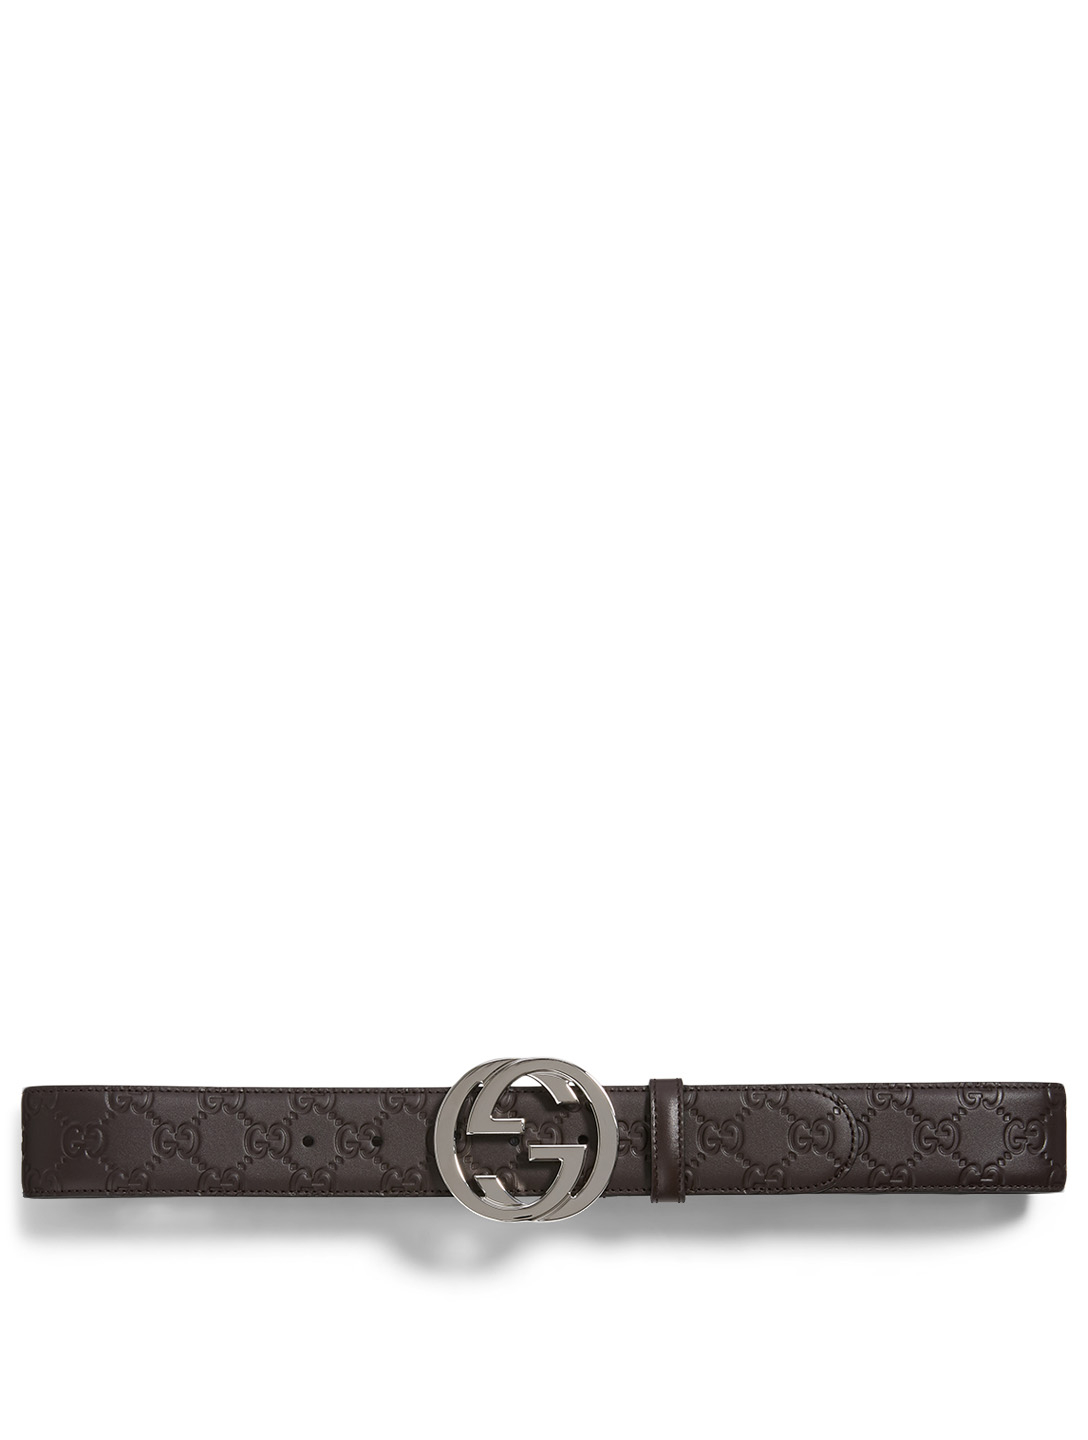 GUCCI Gucci Signature Leather Belt Men's Brown